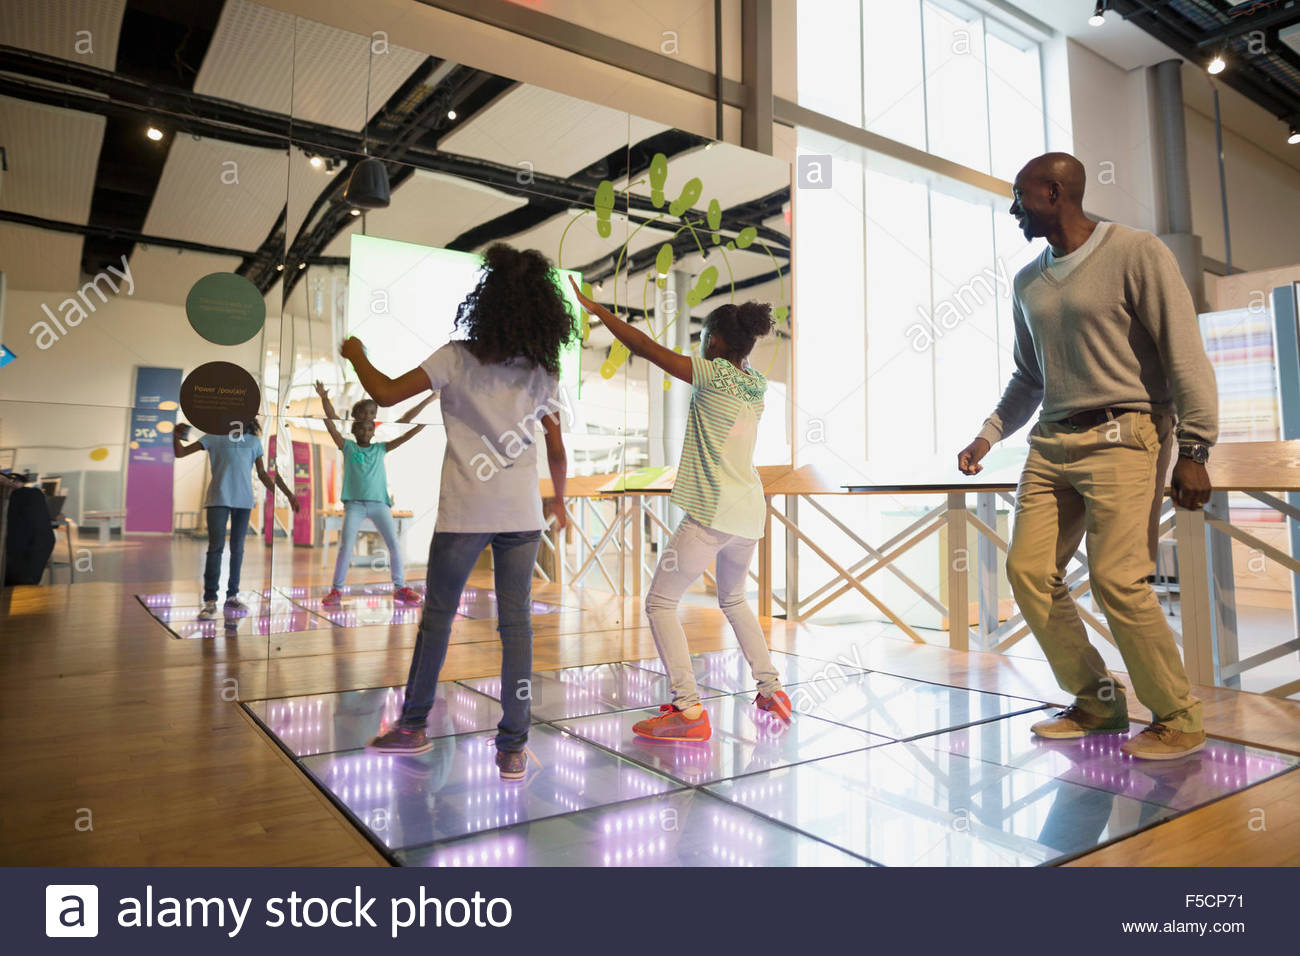 Father watching daughters dance in science center - Stock Image